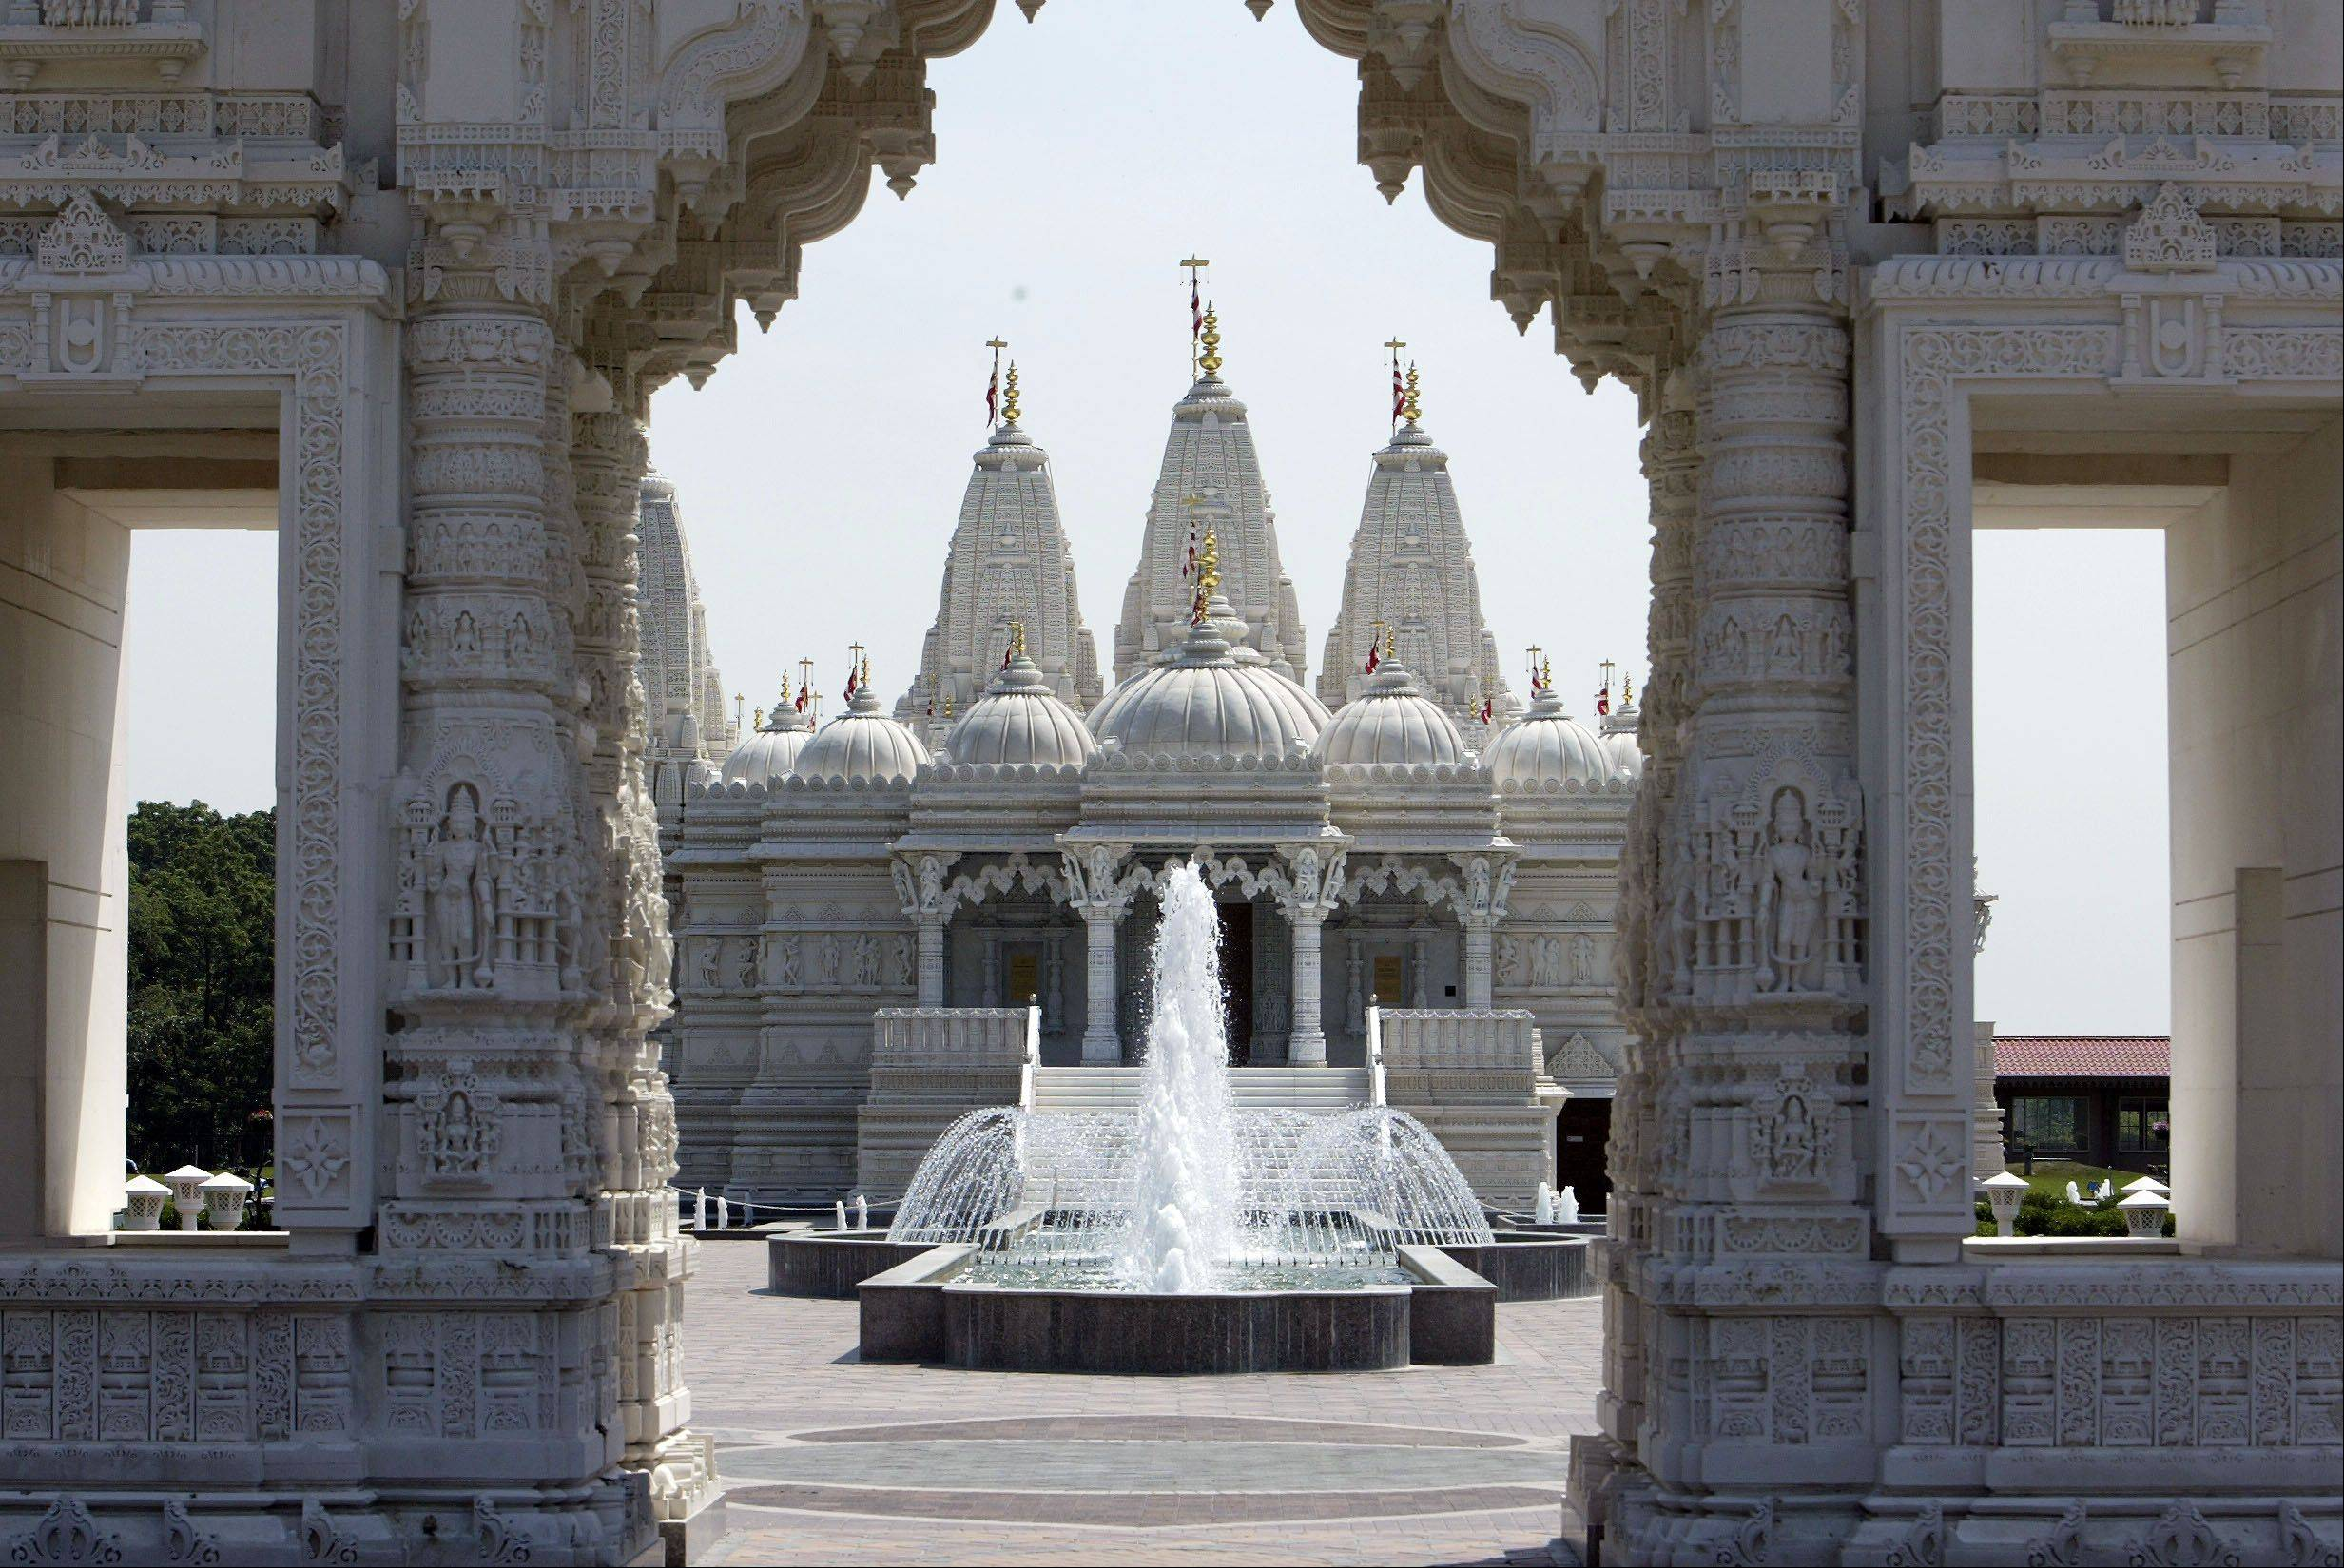 The Bartlett village board unanimously approved the annexation of the BAPS Shri Swaminarayan Mandir Temple property Tuesday.